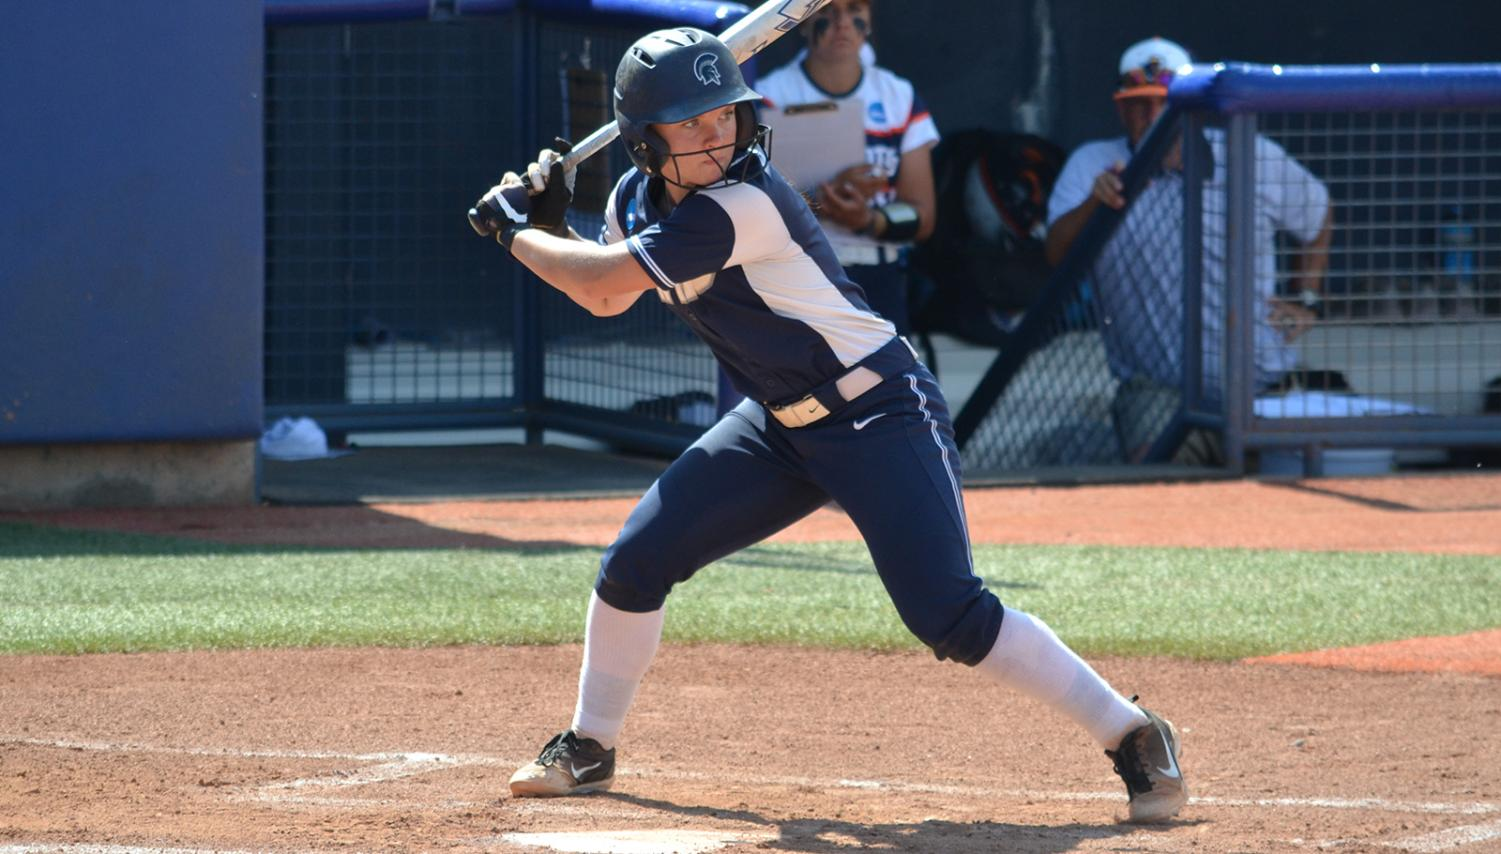 Fourth-year student Nicole Doyle steps up to the plate to bat. The Spartans have opened their season with a .500 record through their first 10 games and recently traveled to Arizona for their spring break trip, which they finished with a 4-2 record.